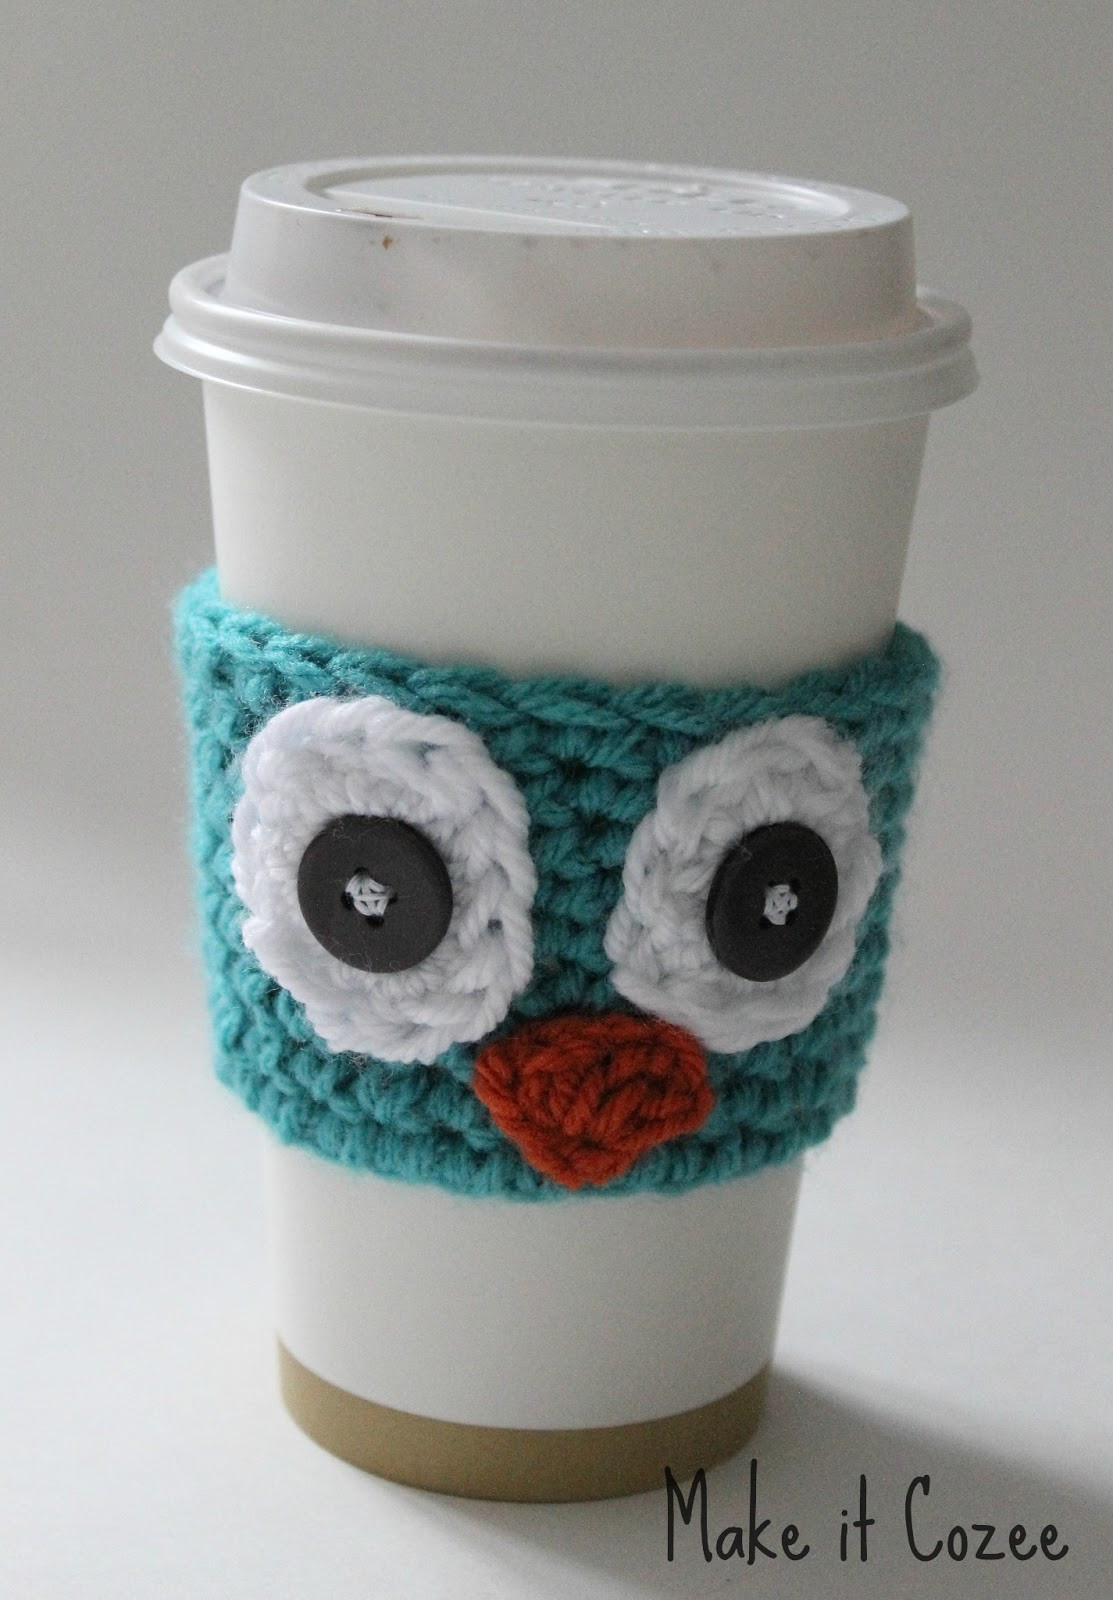 Crochet Coffee Cup Cozy Inspirational Make It Cozee Crochet Owl Coffee Cozy Of Crochet Coffee Cup Cozy Fresh 20 Cool Crochet Coffee Cozy Ideas & Tutorials Hative